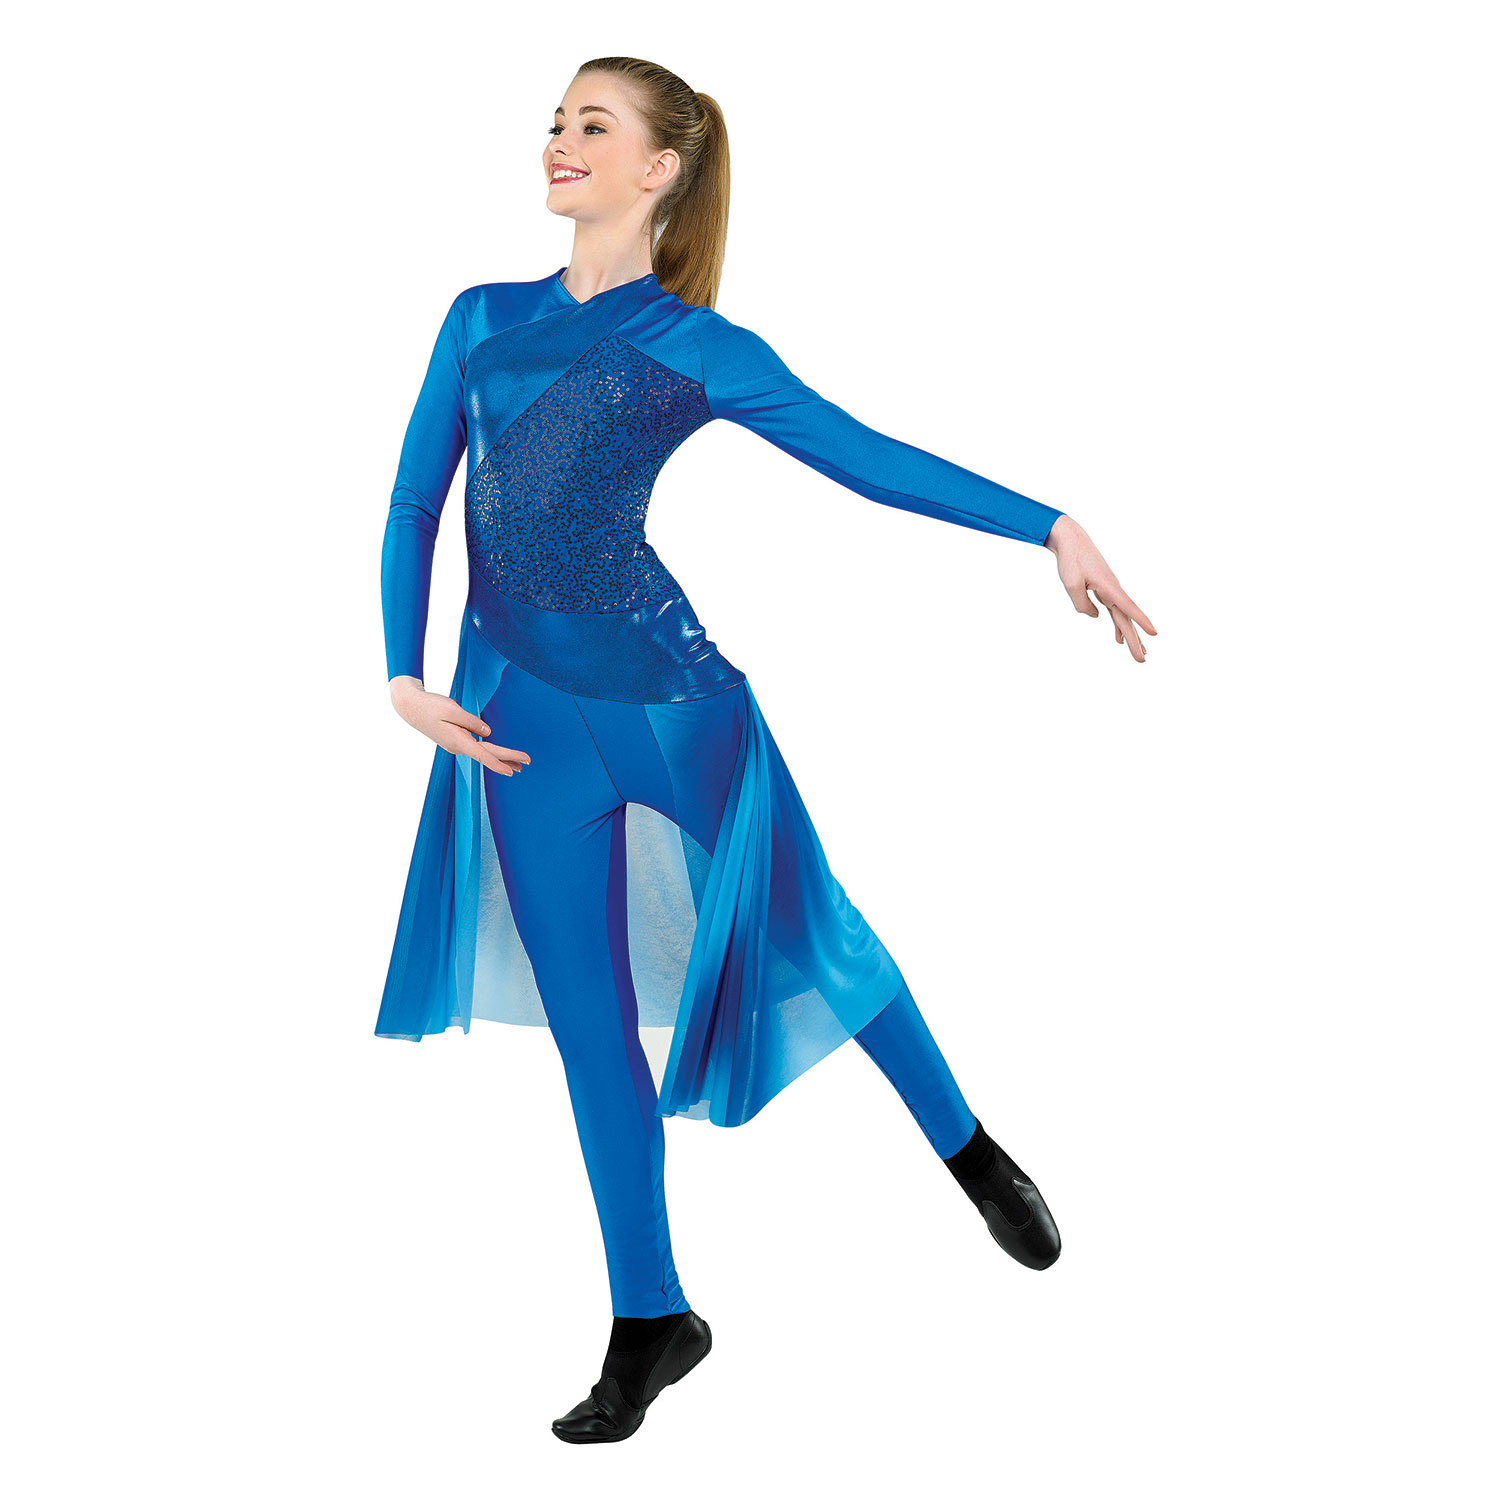 Guard Uniforms: Style 5003